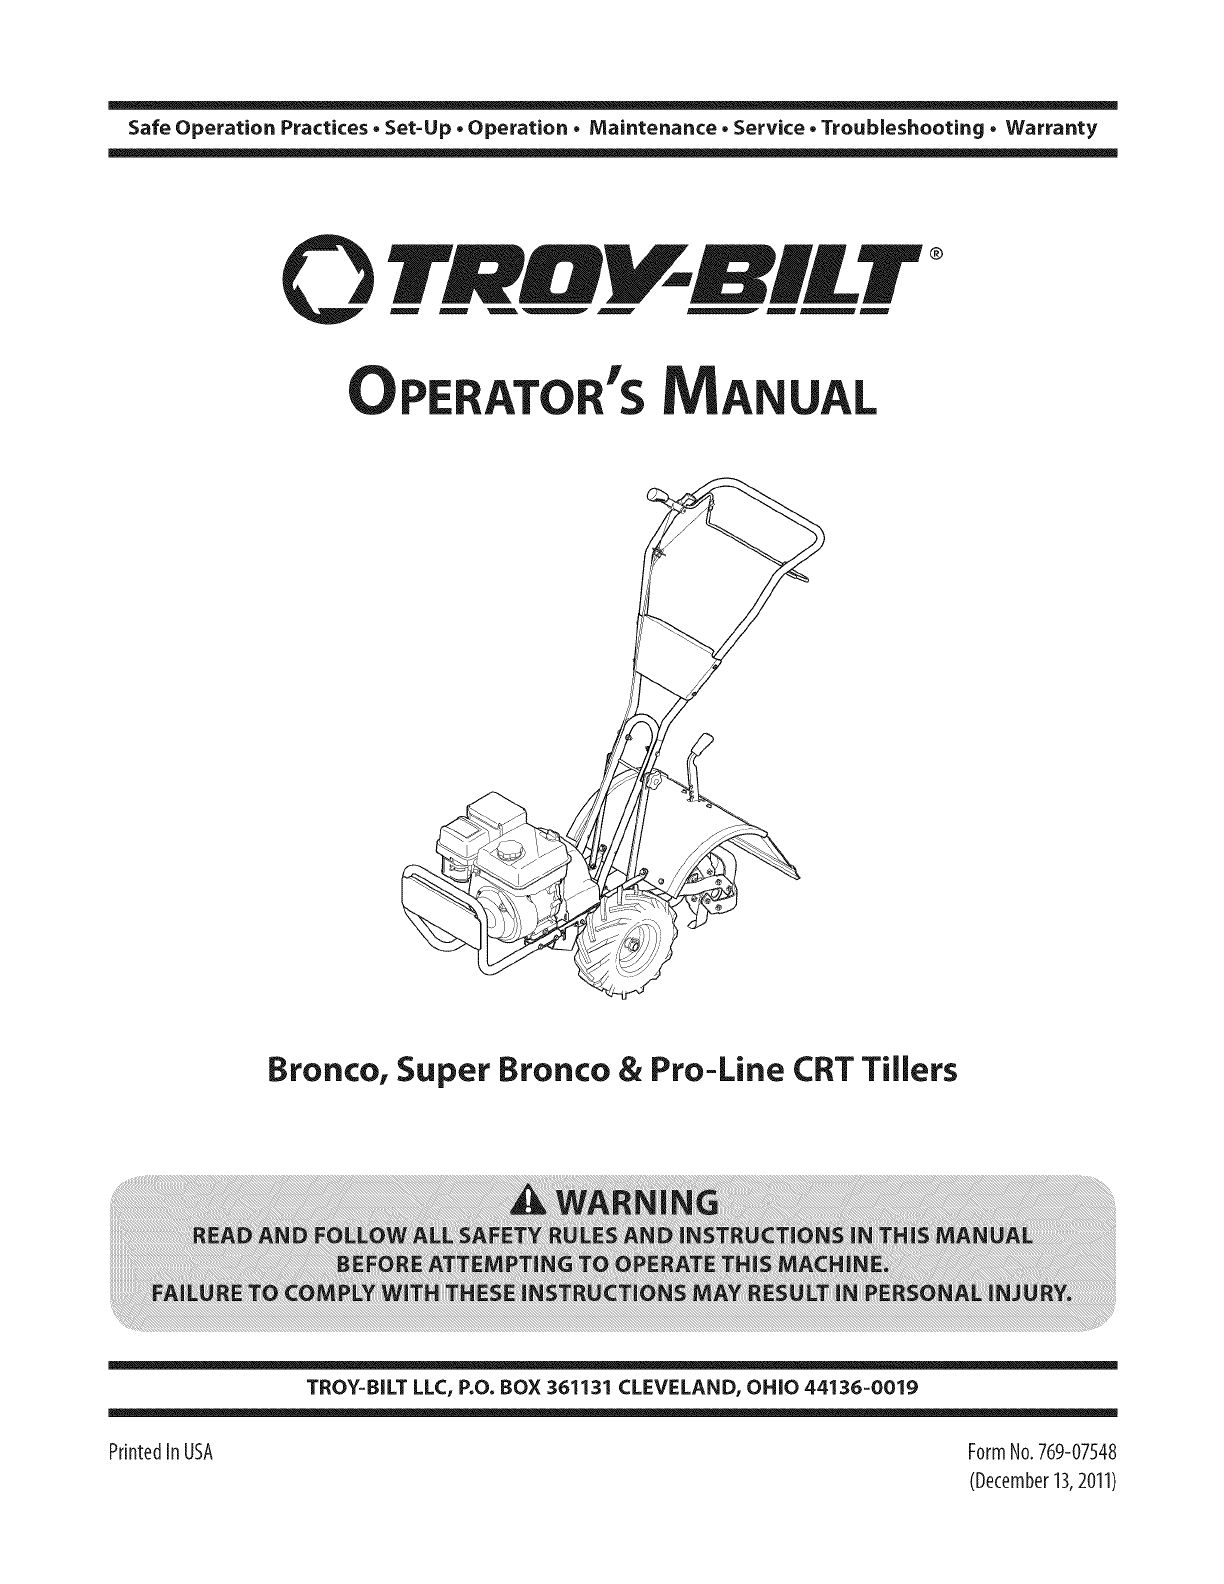 Troybilt 21D 64M1066 User Manual REAR TINE TILLER Manuals And Guides  1403390L